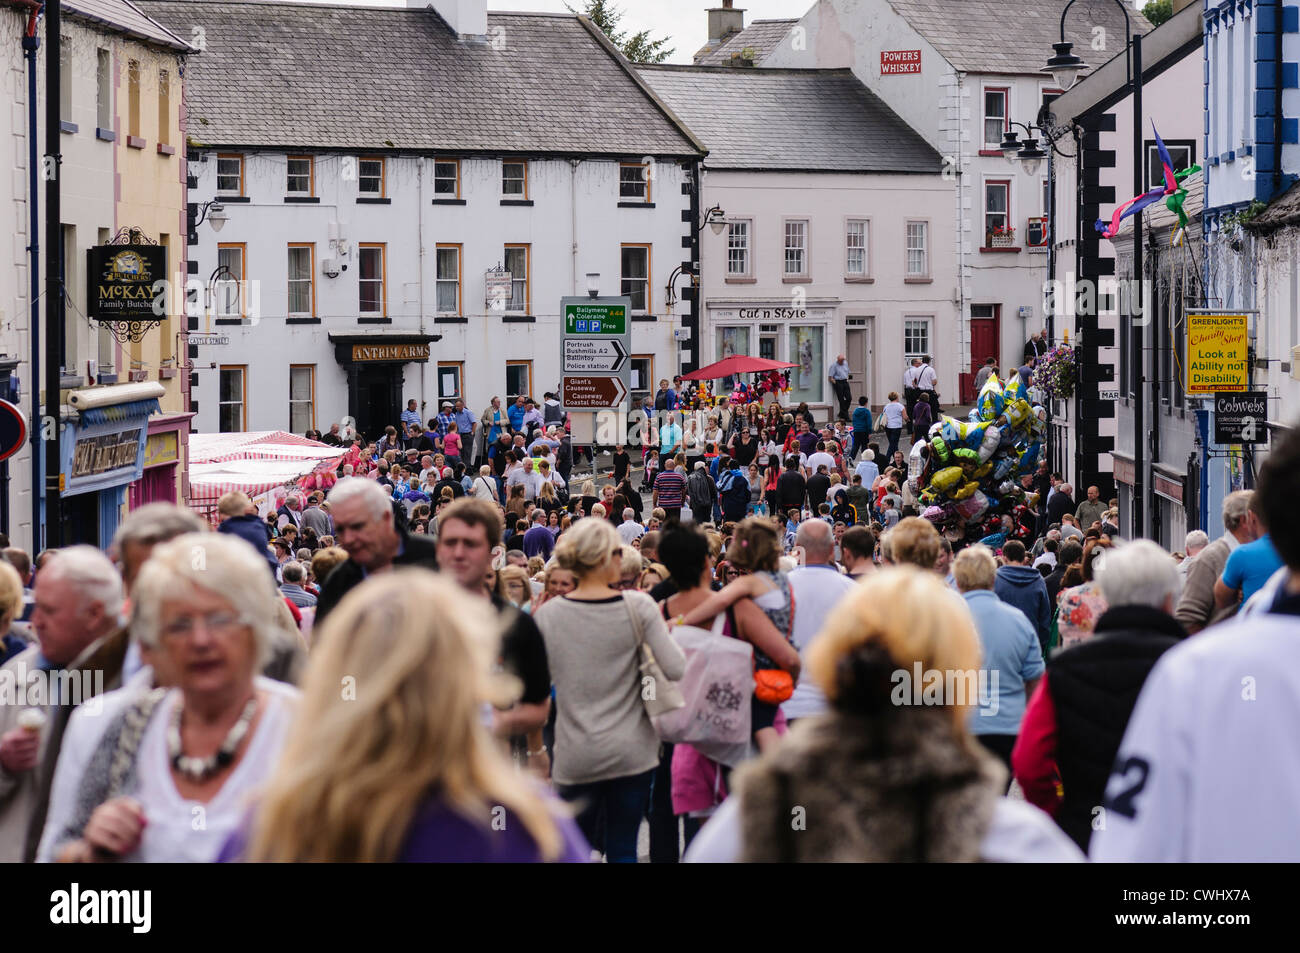 Thousands of people on the streets of Ballycastle during the Ould Lammas Fair Stock Photo